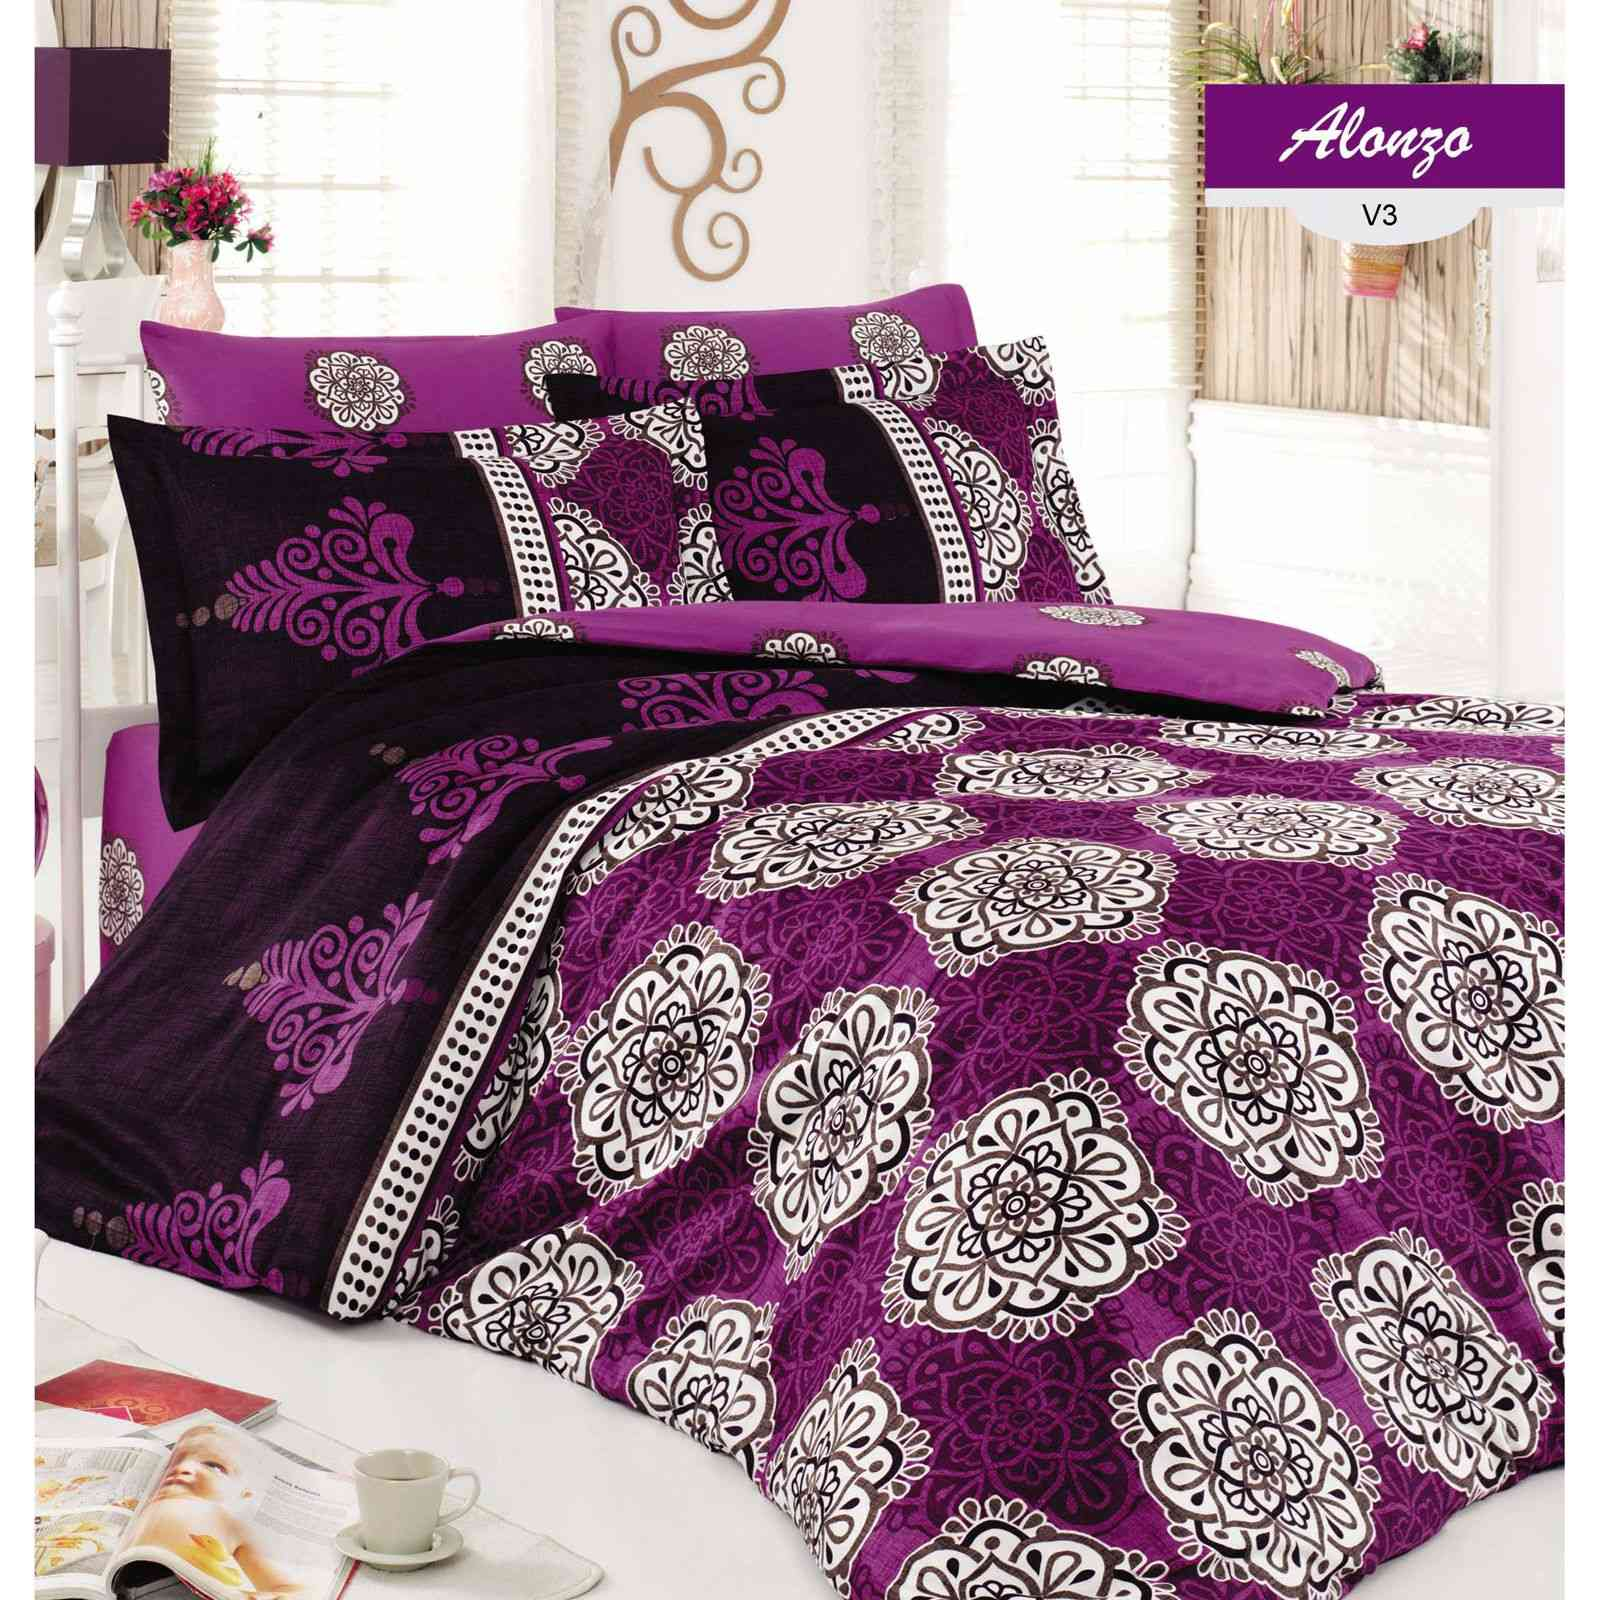 majoli parure de lit violet brandalley. Black Bedroom Furniture Sets. Home Design Ideas